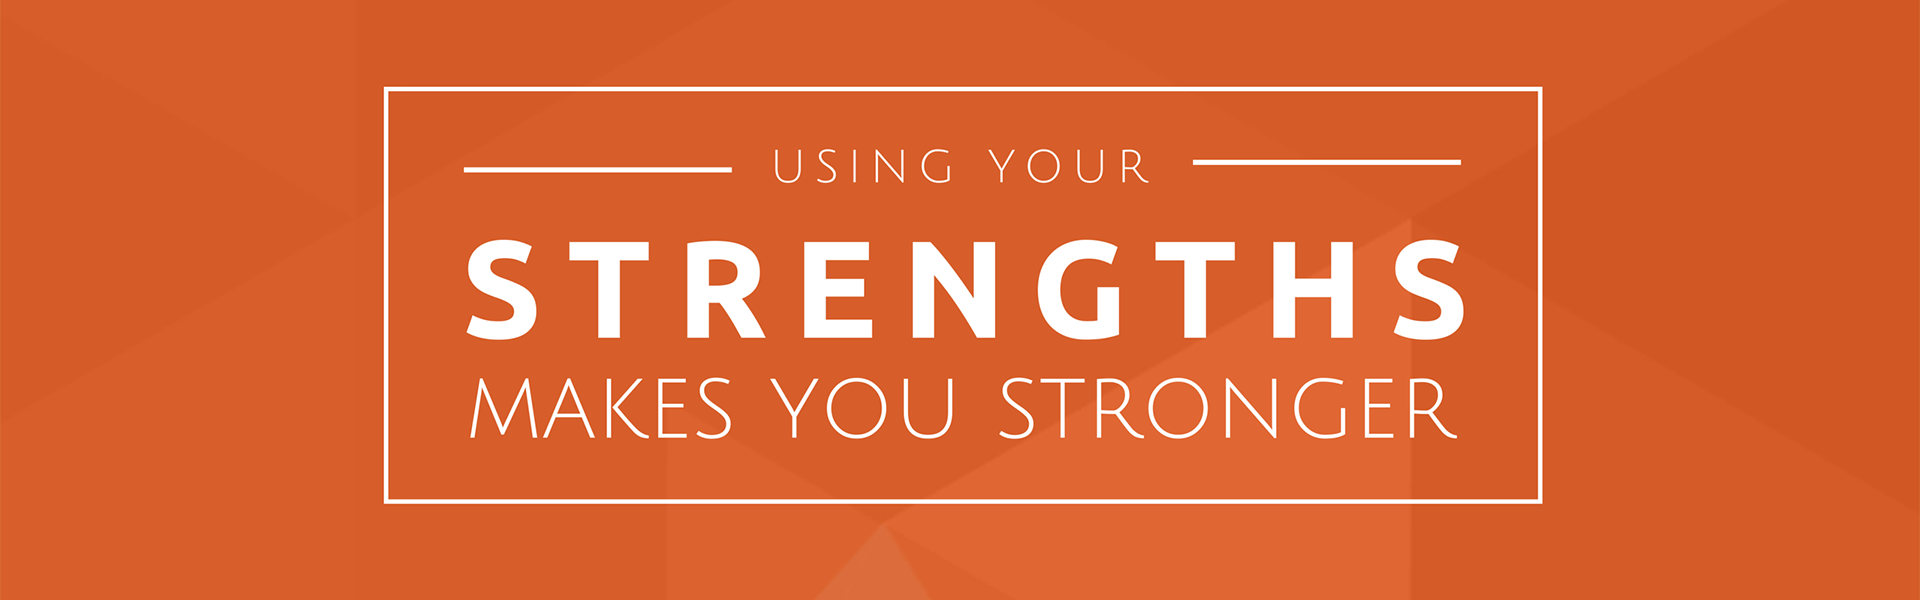 strenths-make-you-stronger